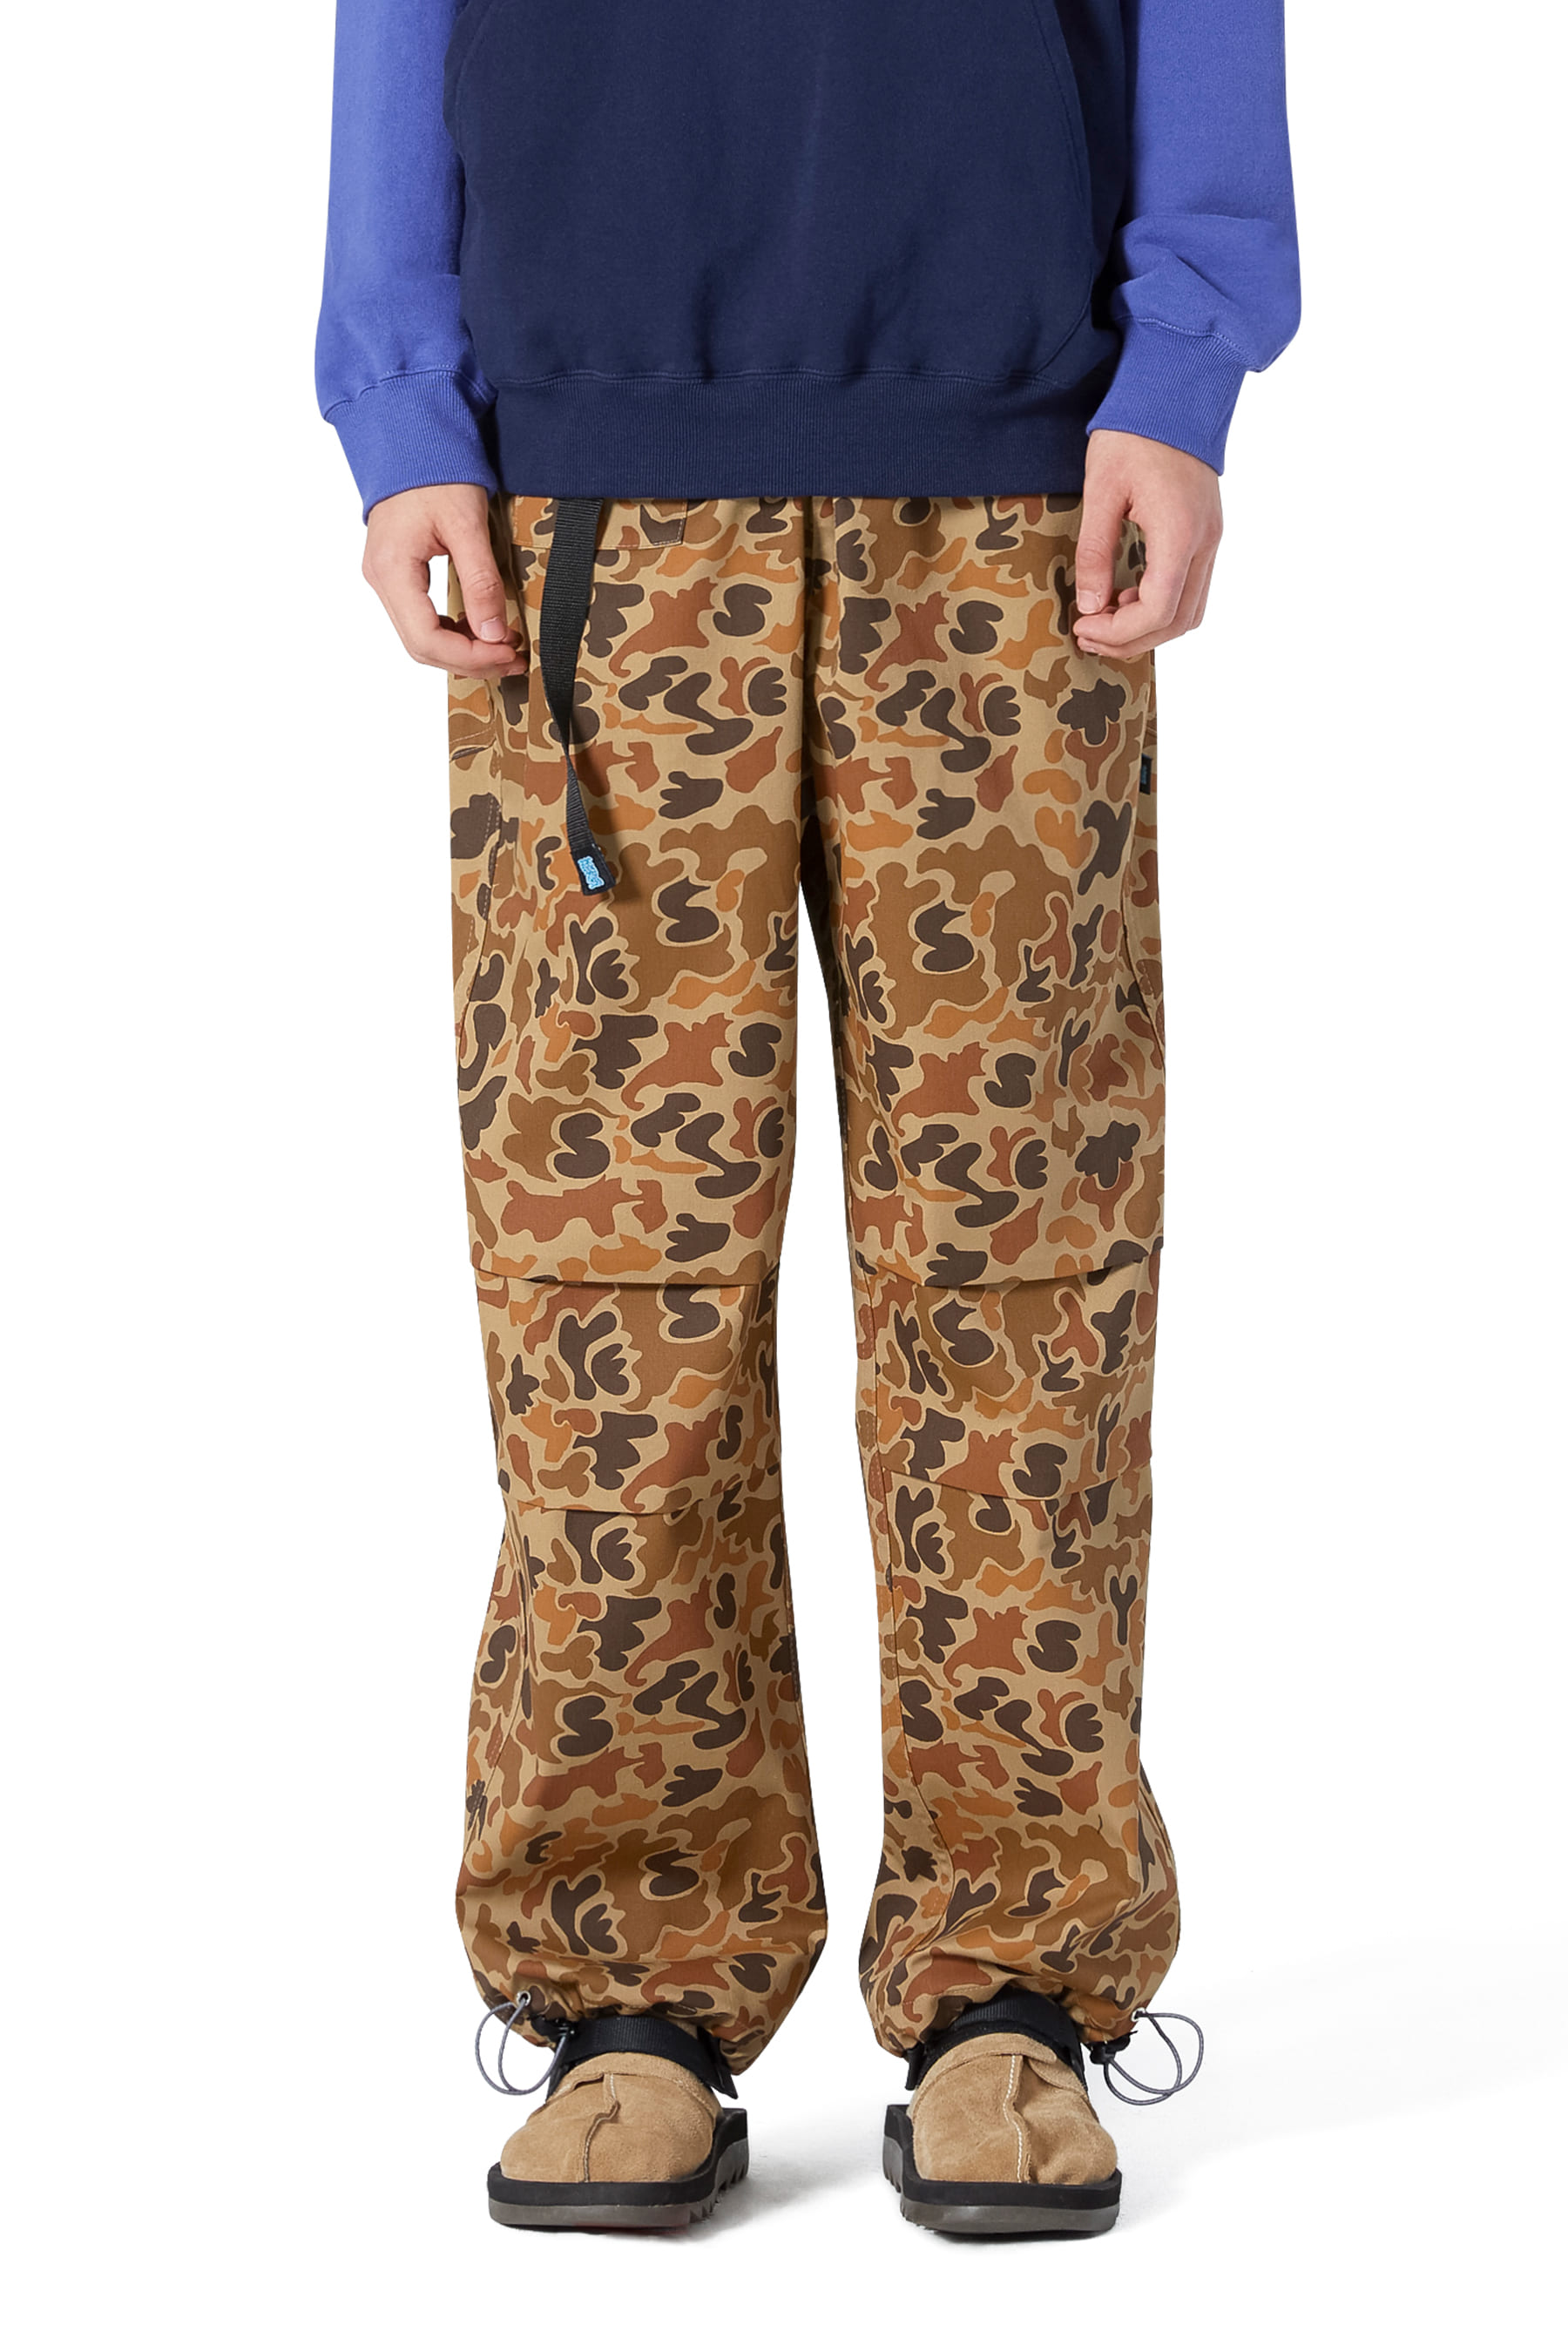 Y.E.S Jungle Pants Desert